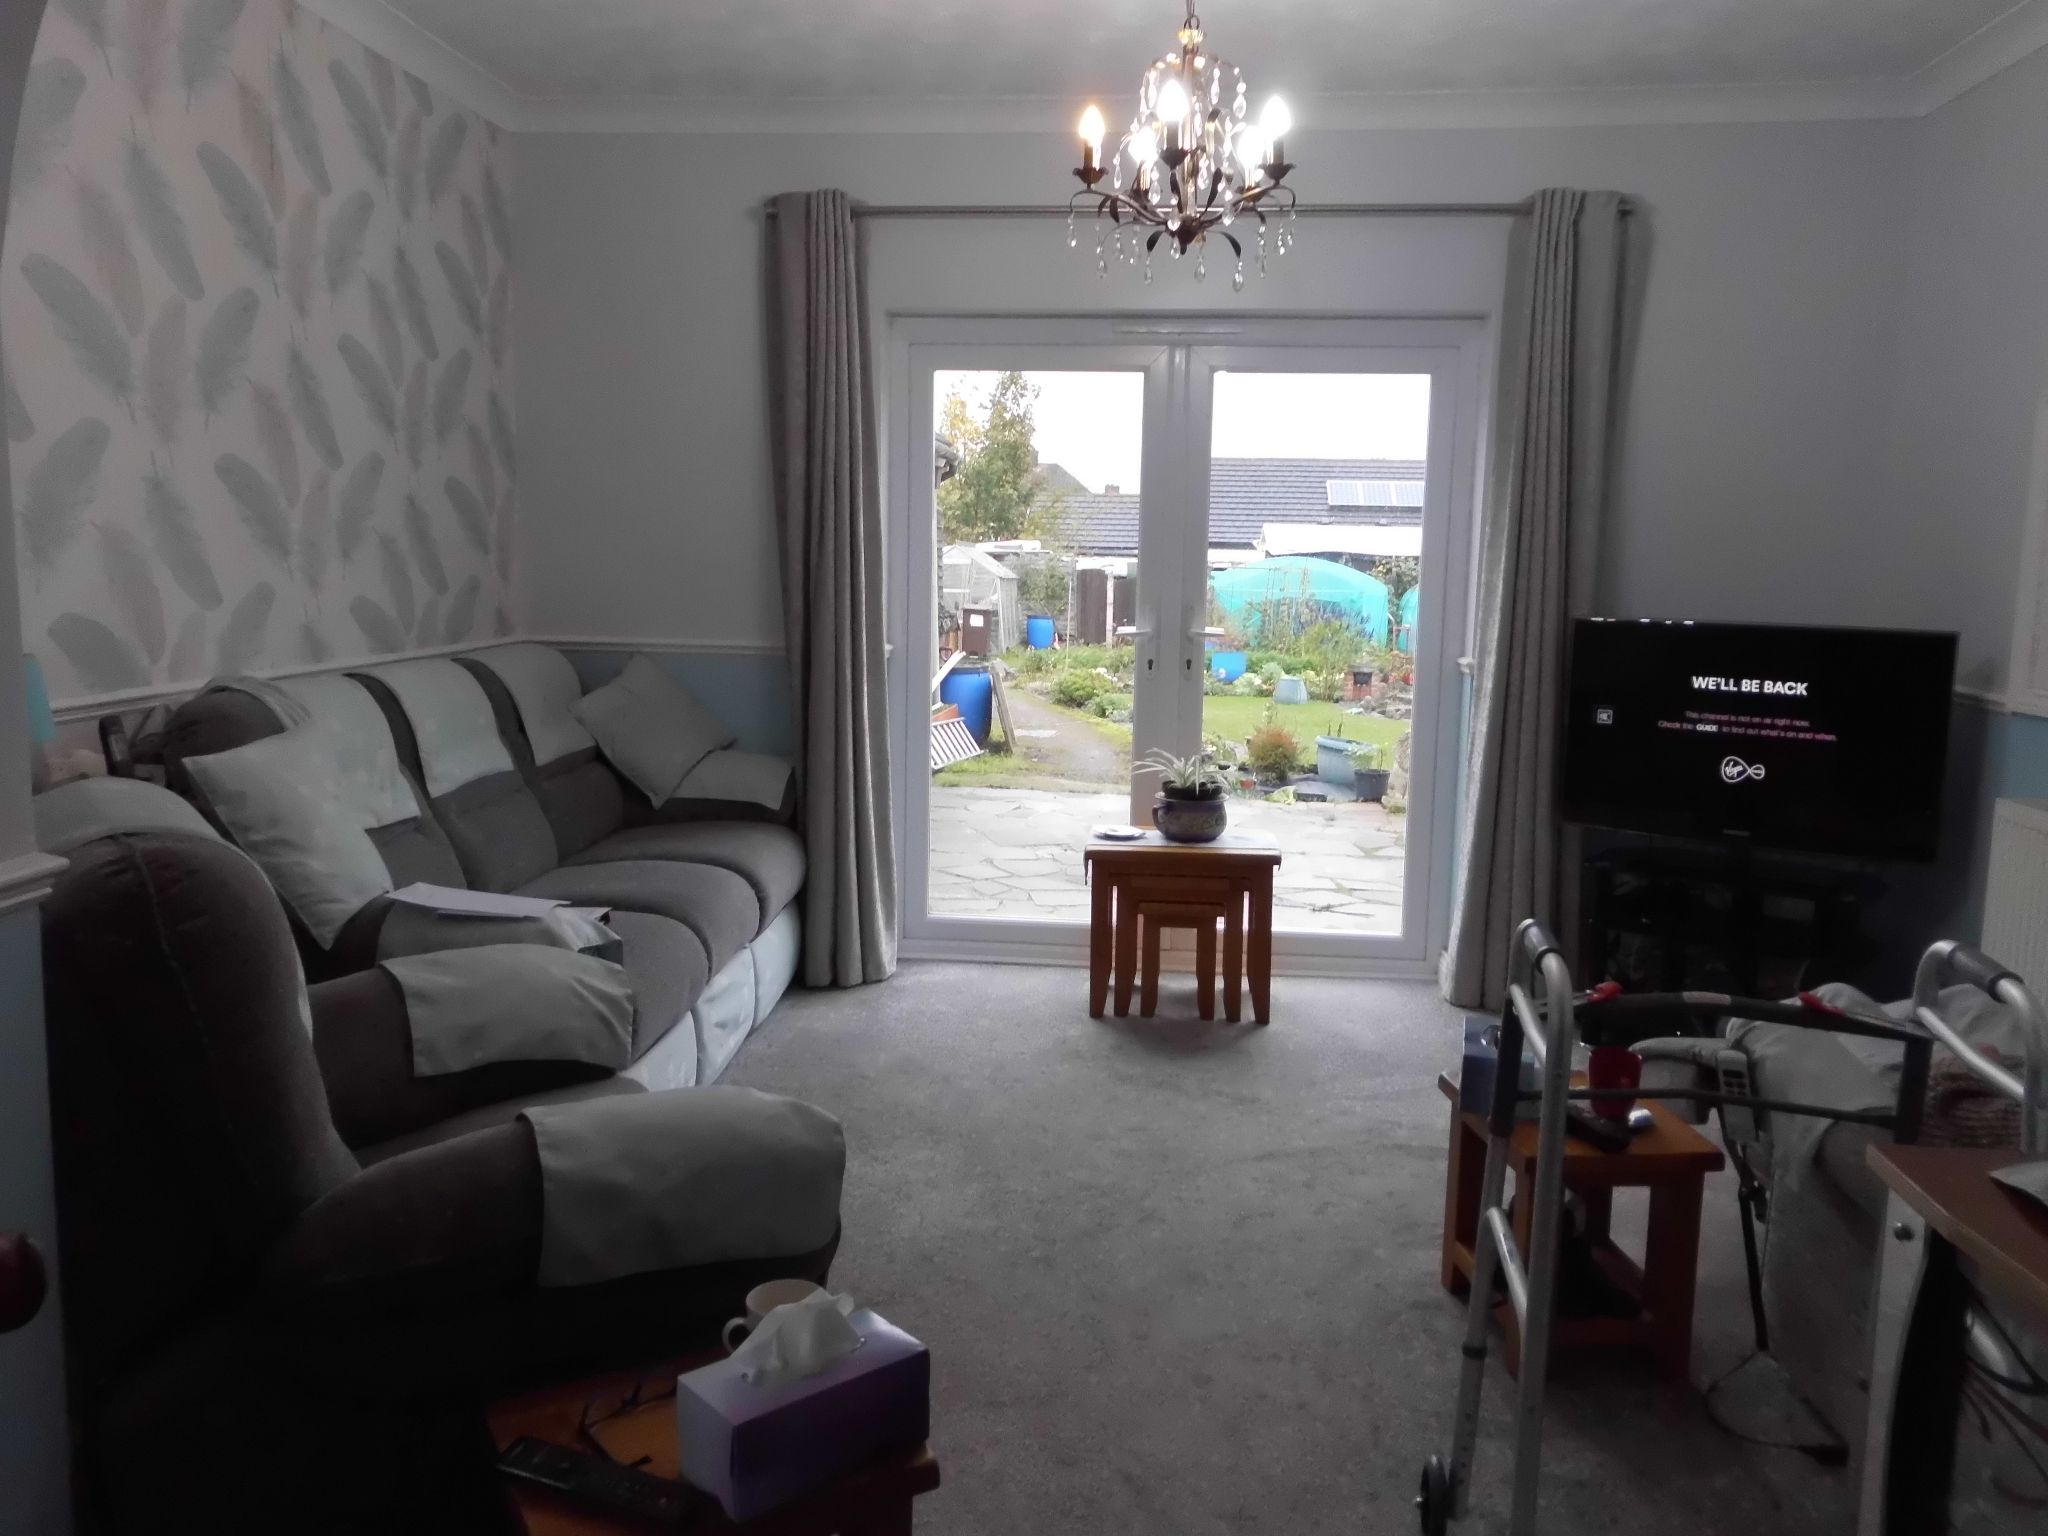 4 bedroom detached bungalow SSTC in Leicester - Photograph 2.